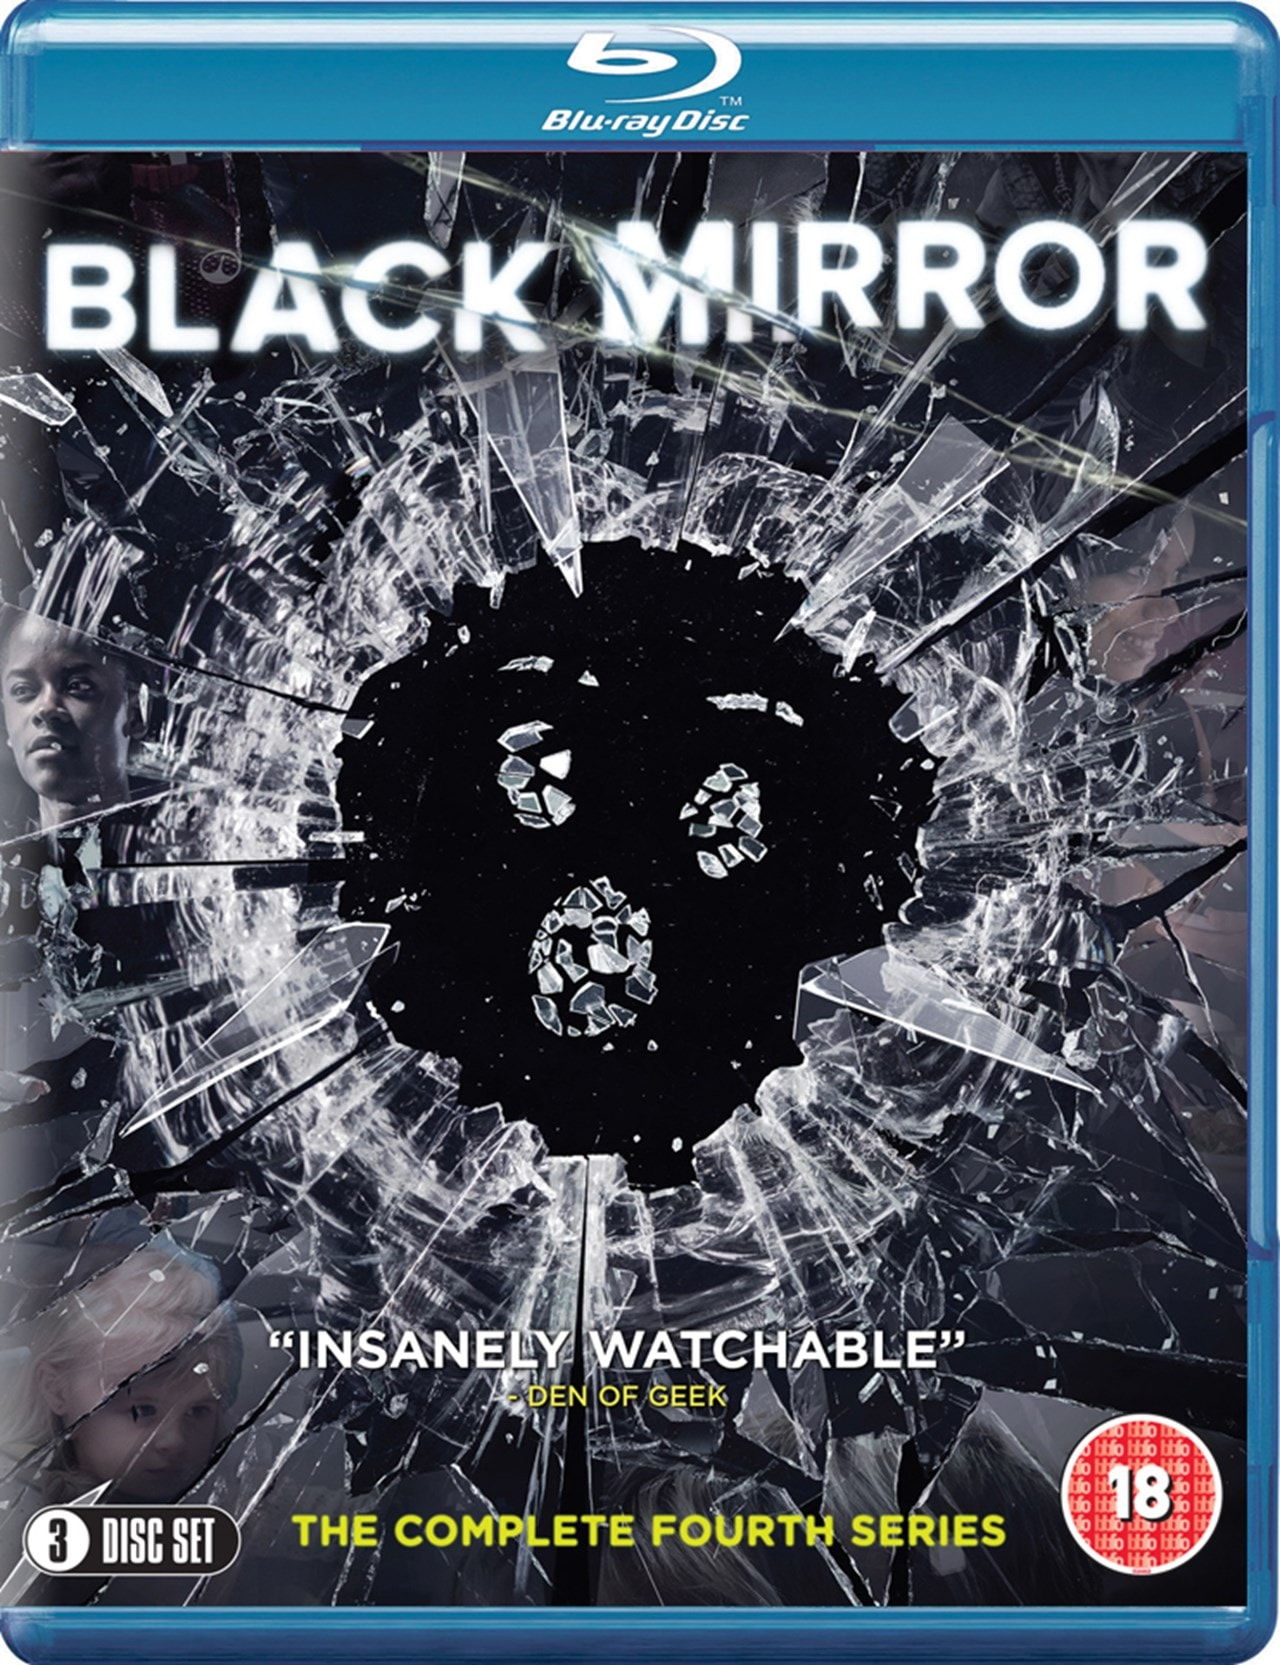 Black Mirror: The Complete Fourth Series - 1